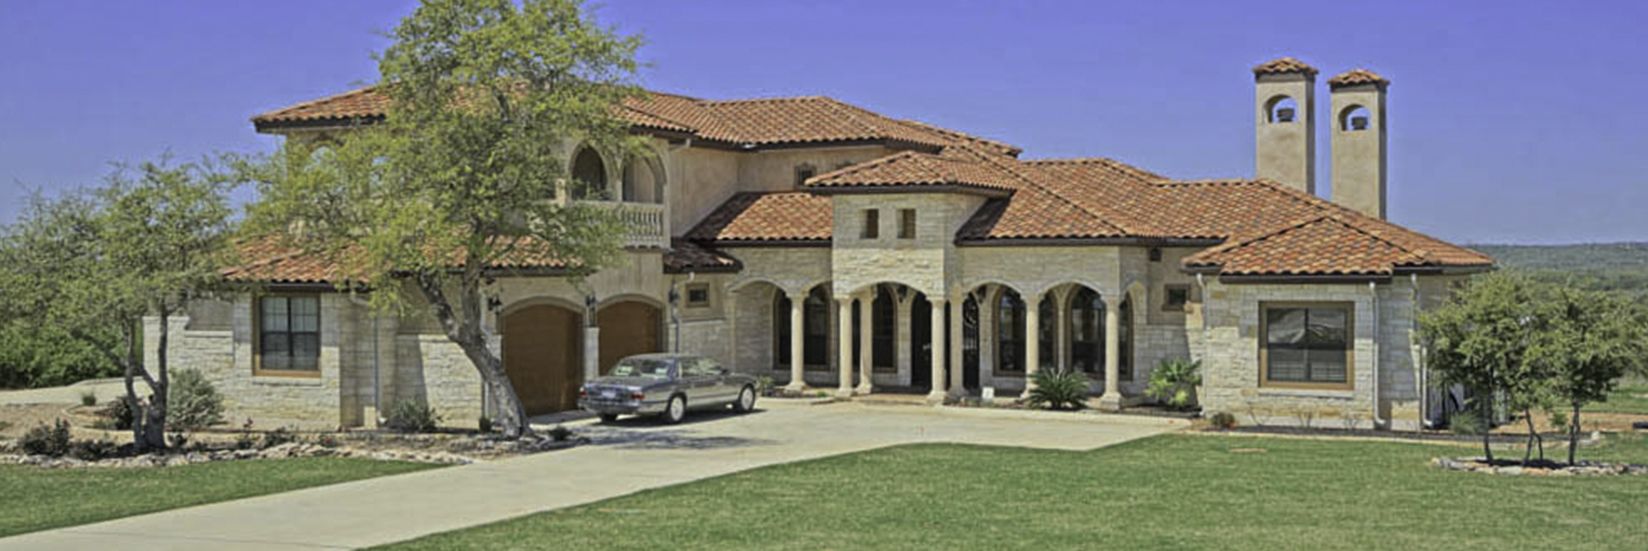 Custom home builder new braunfels san antonio hill Modern custom home builders